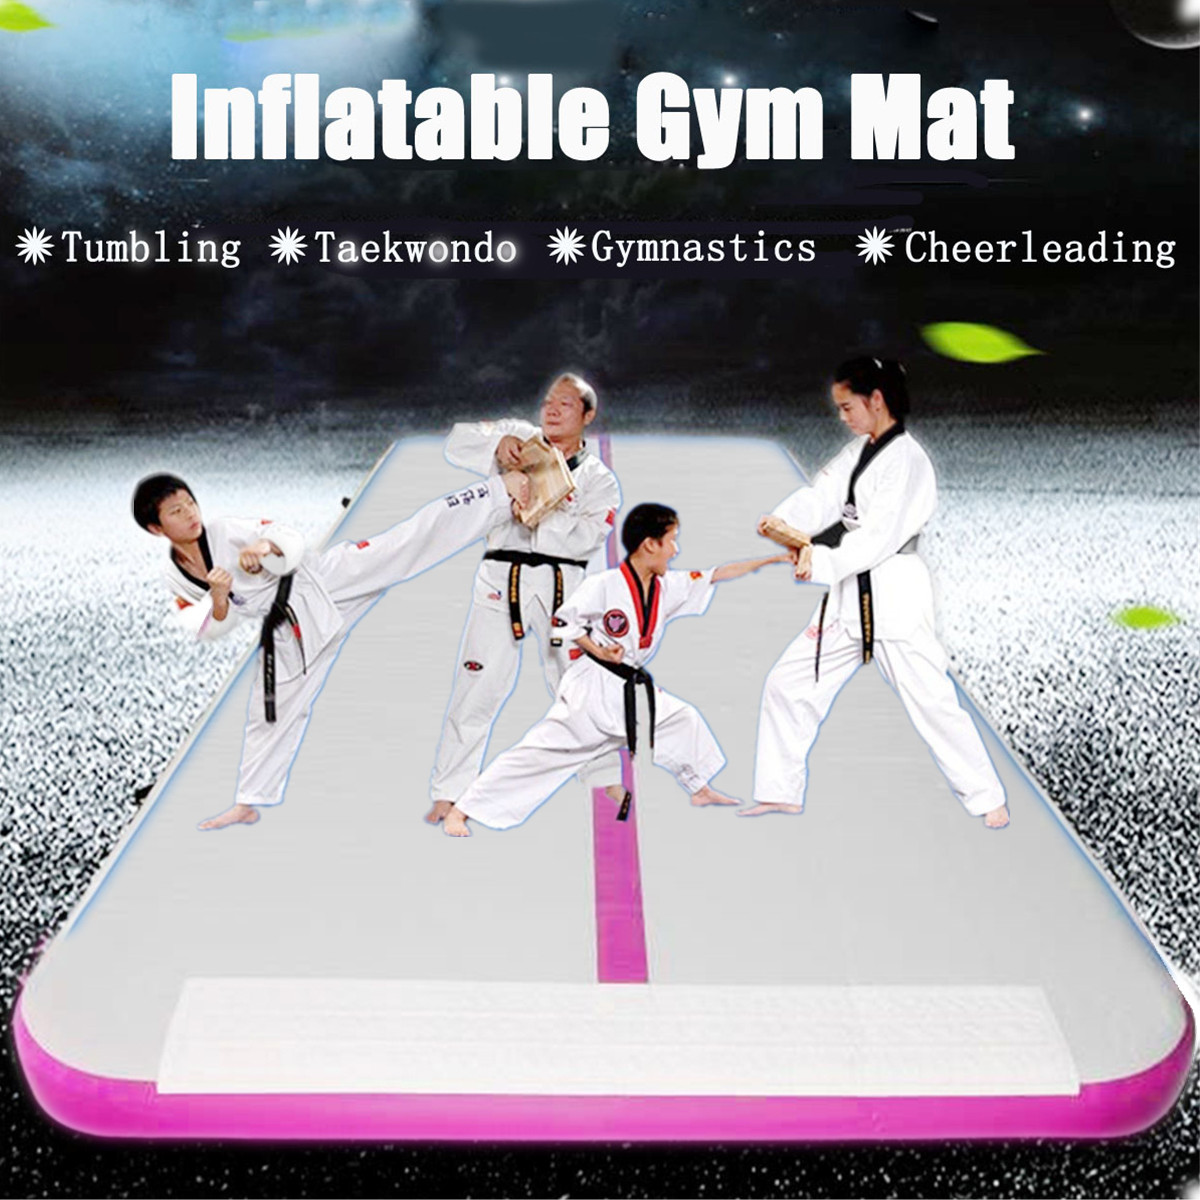 PVC Inflatable Gym Mat Air Tumbling Track Gymnastics Cheerleading Training Board Equipment Home Gym+Pump,26ft